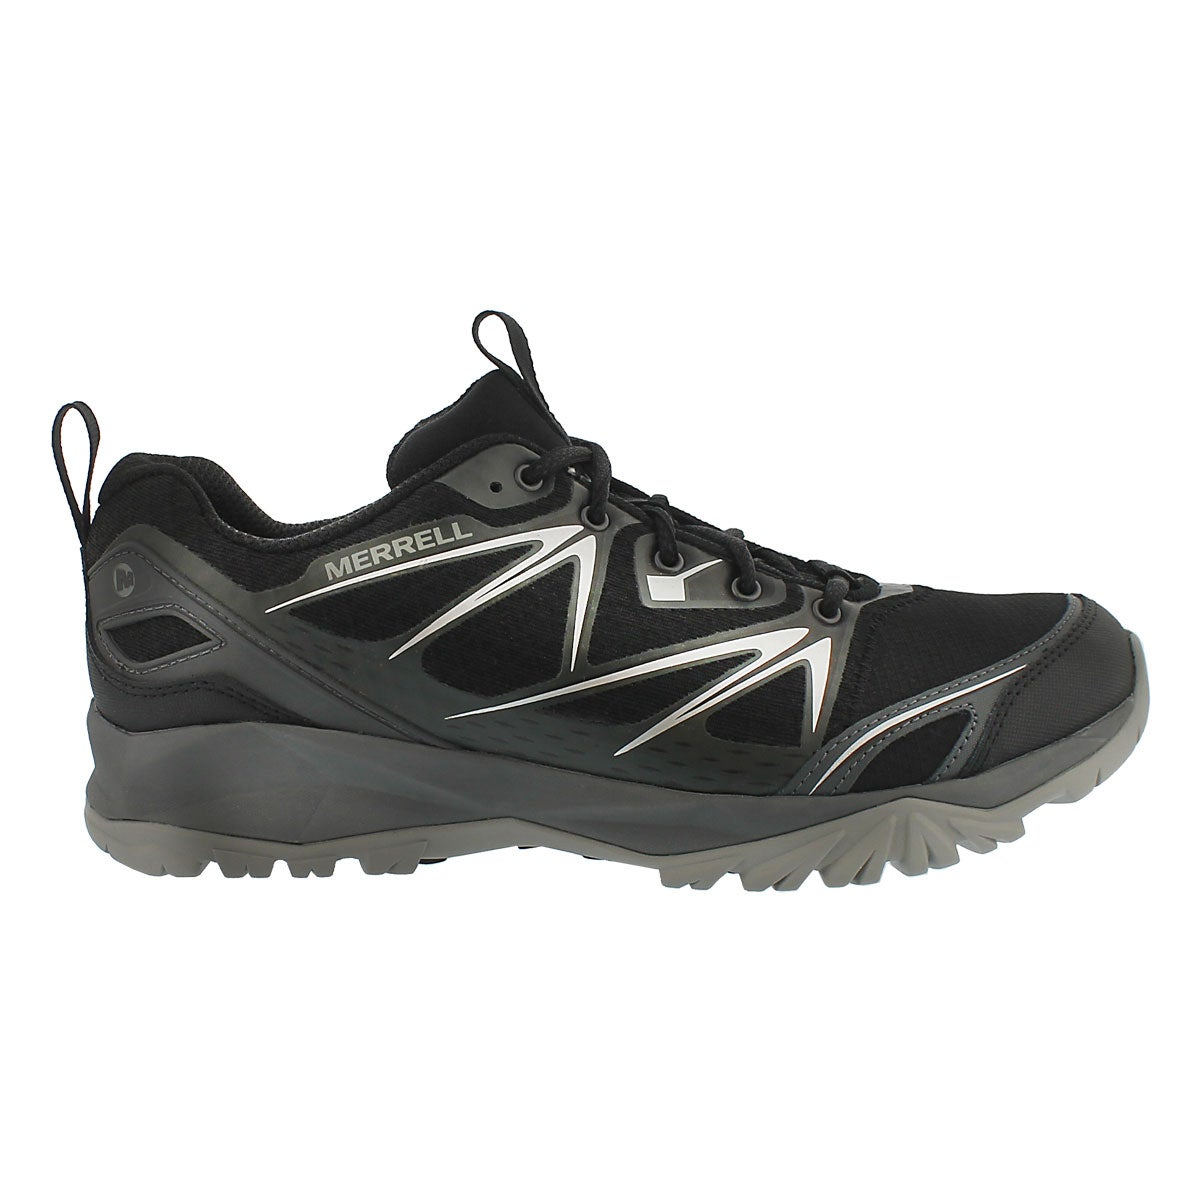 Mns Capra Bolt black hiking shoe